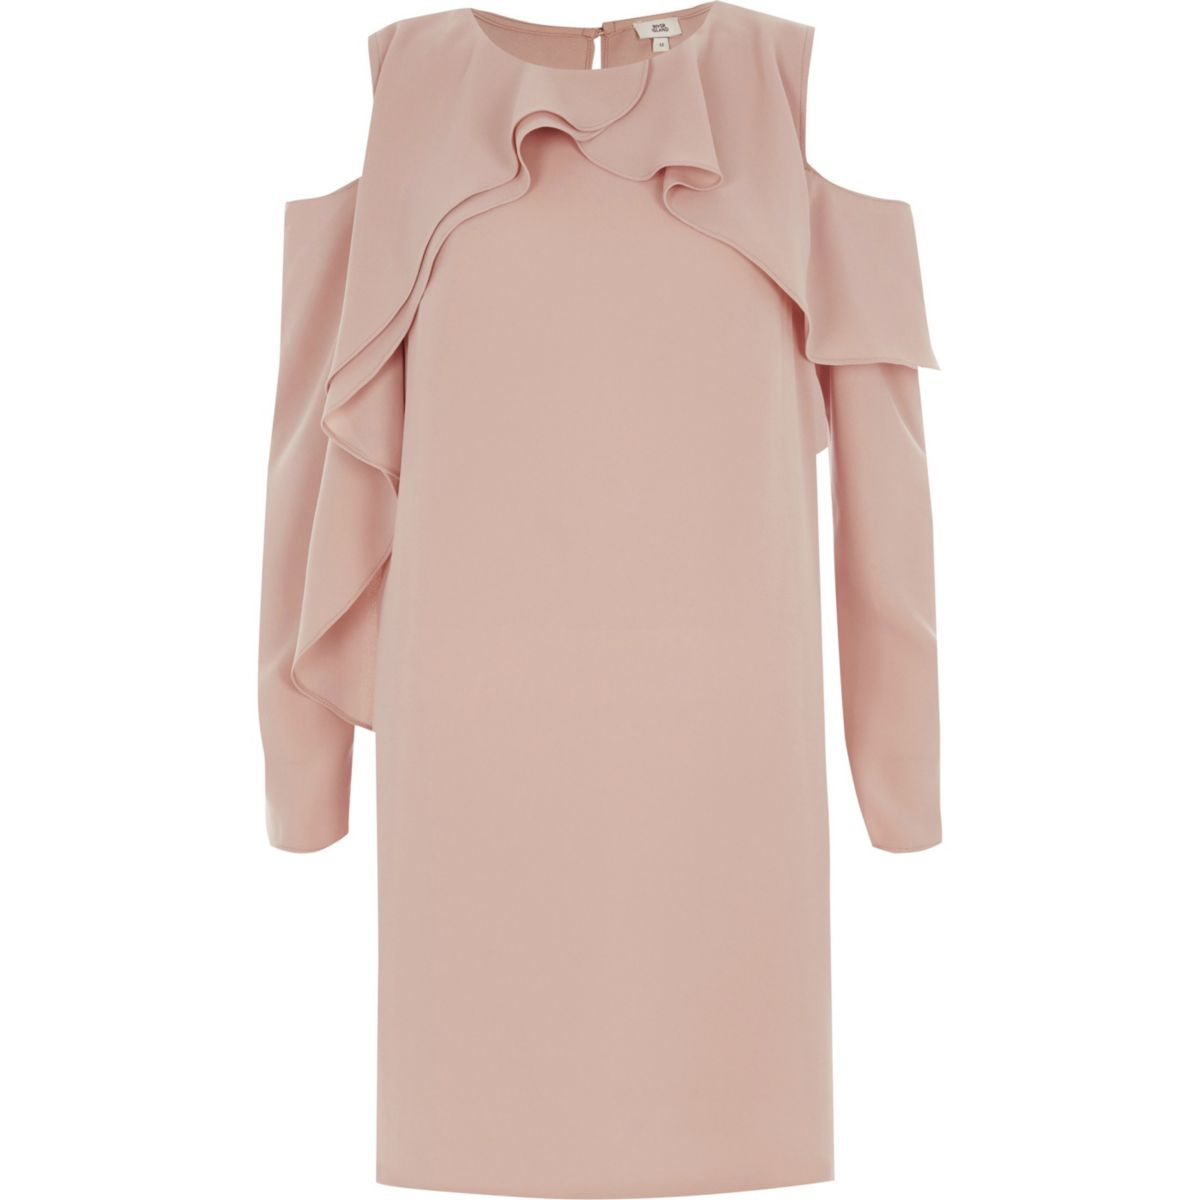 Light pink frill cold shoulder swing dress